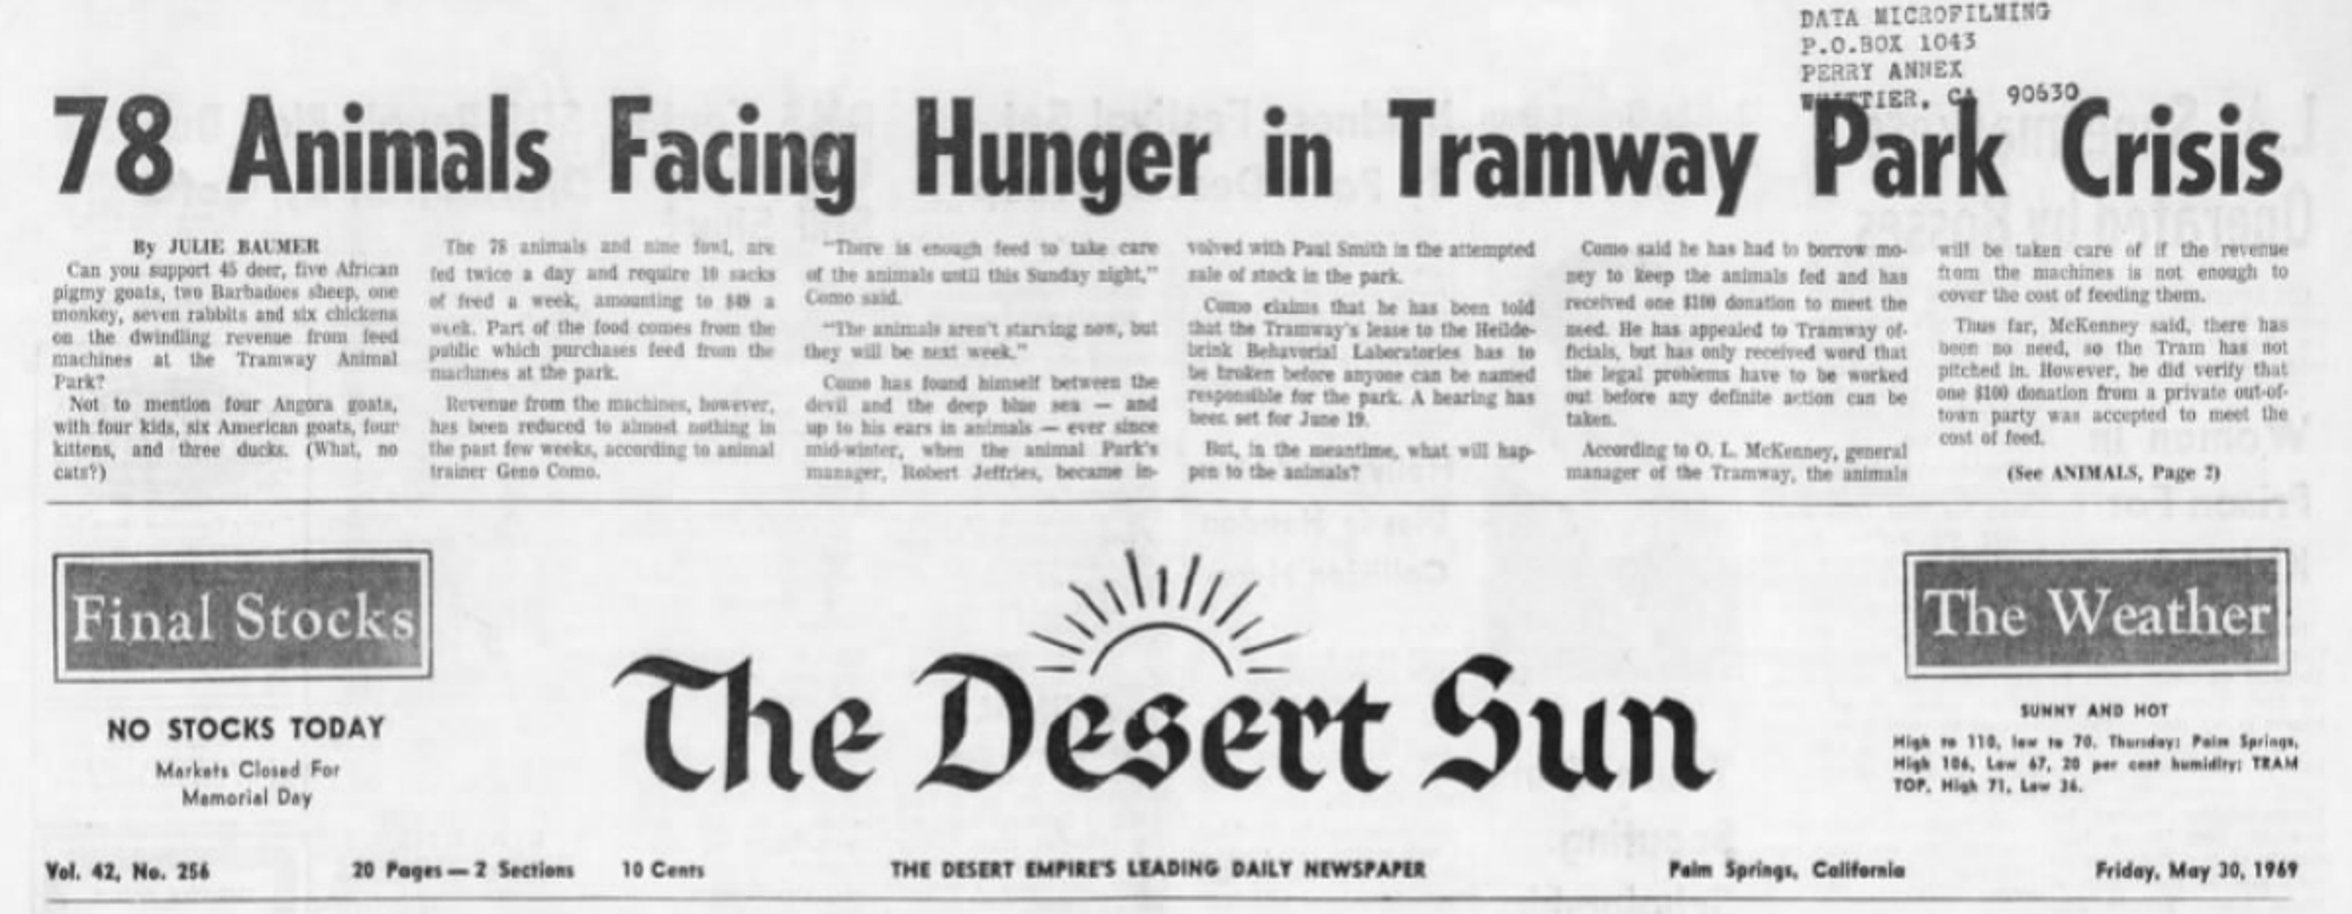 A May 30, 1969 headline in The Desert Sun warned of animal hunger crisis at the Tramway Animal Park